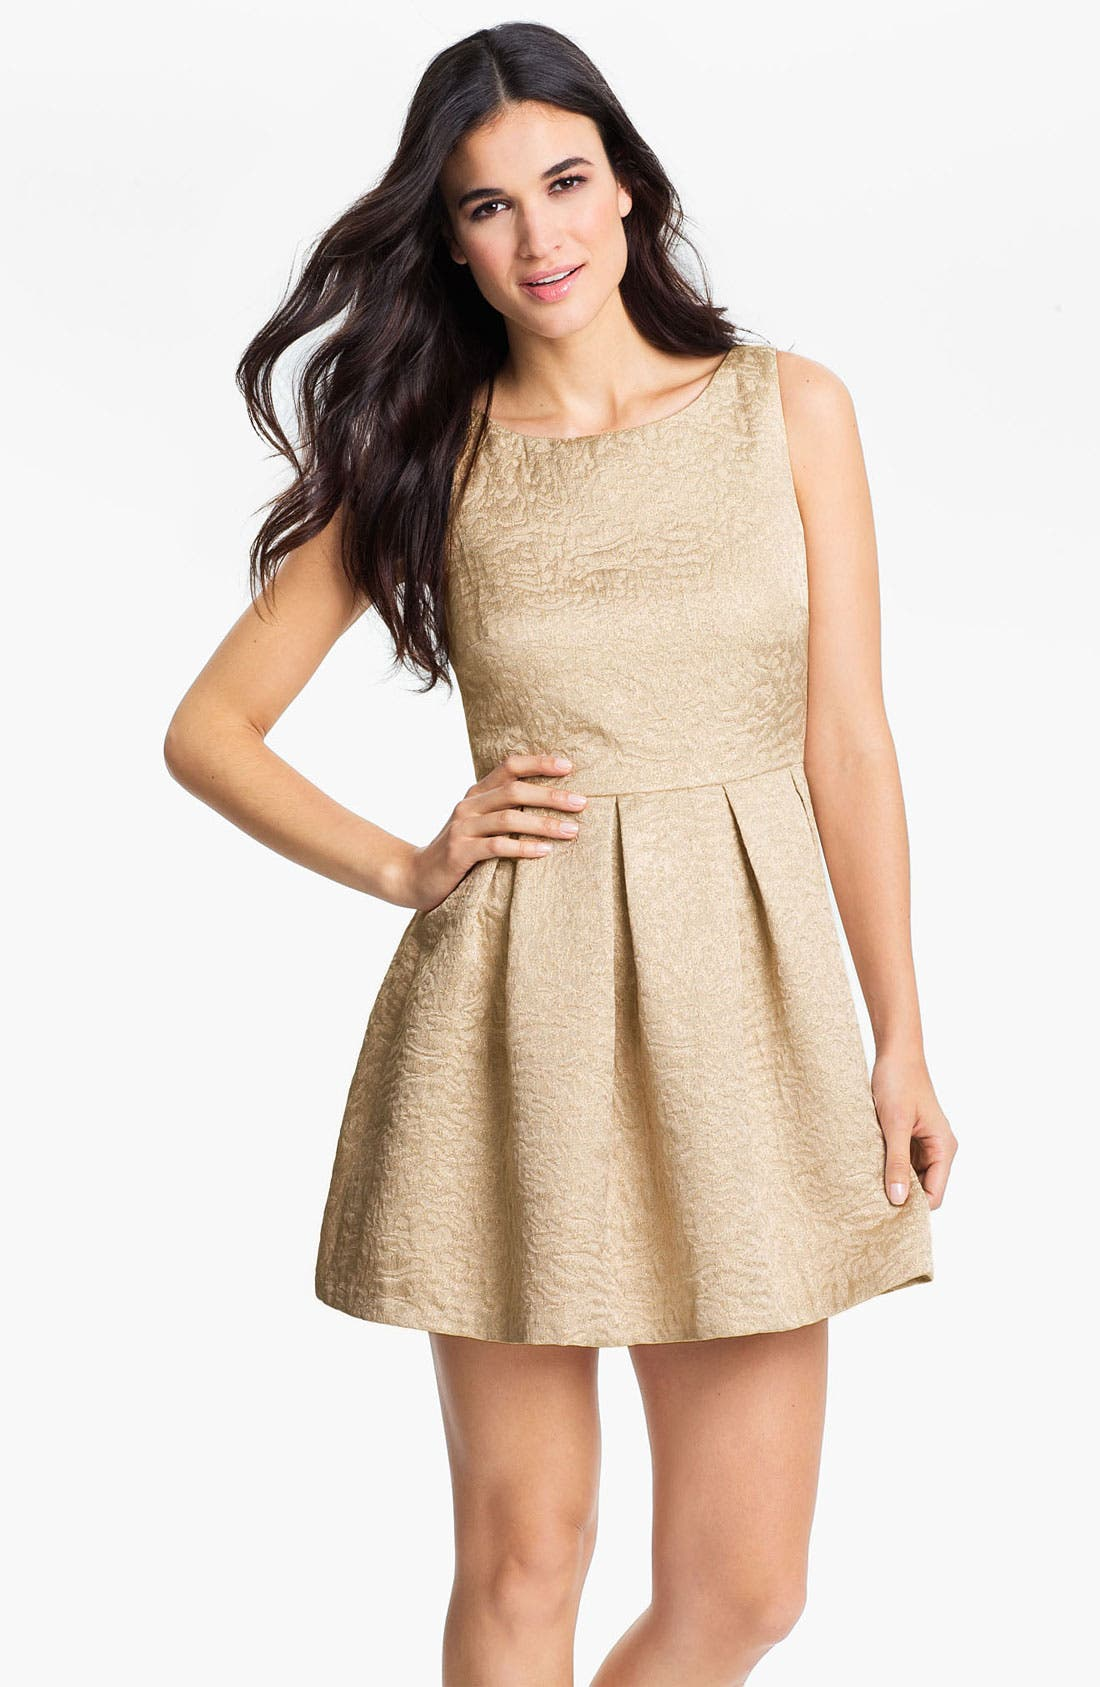 Alternate Image 1 Selected - Vince Camuto Sleeveless Jacquard Dress